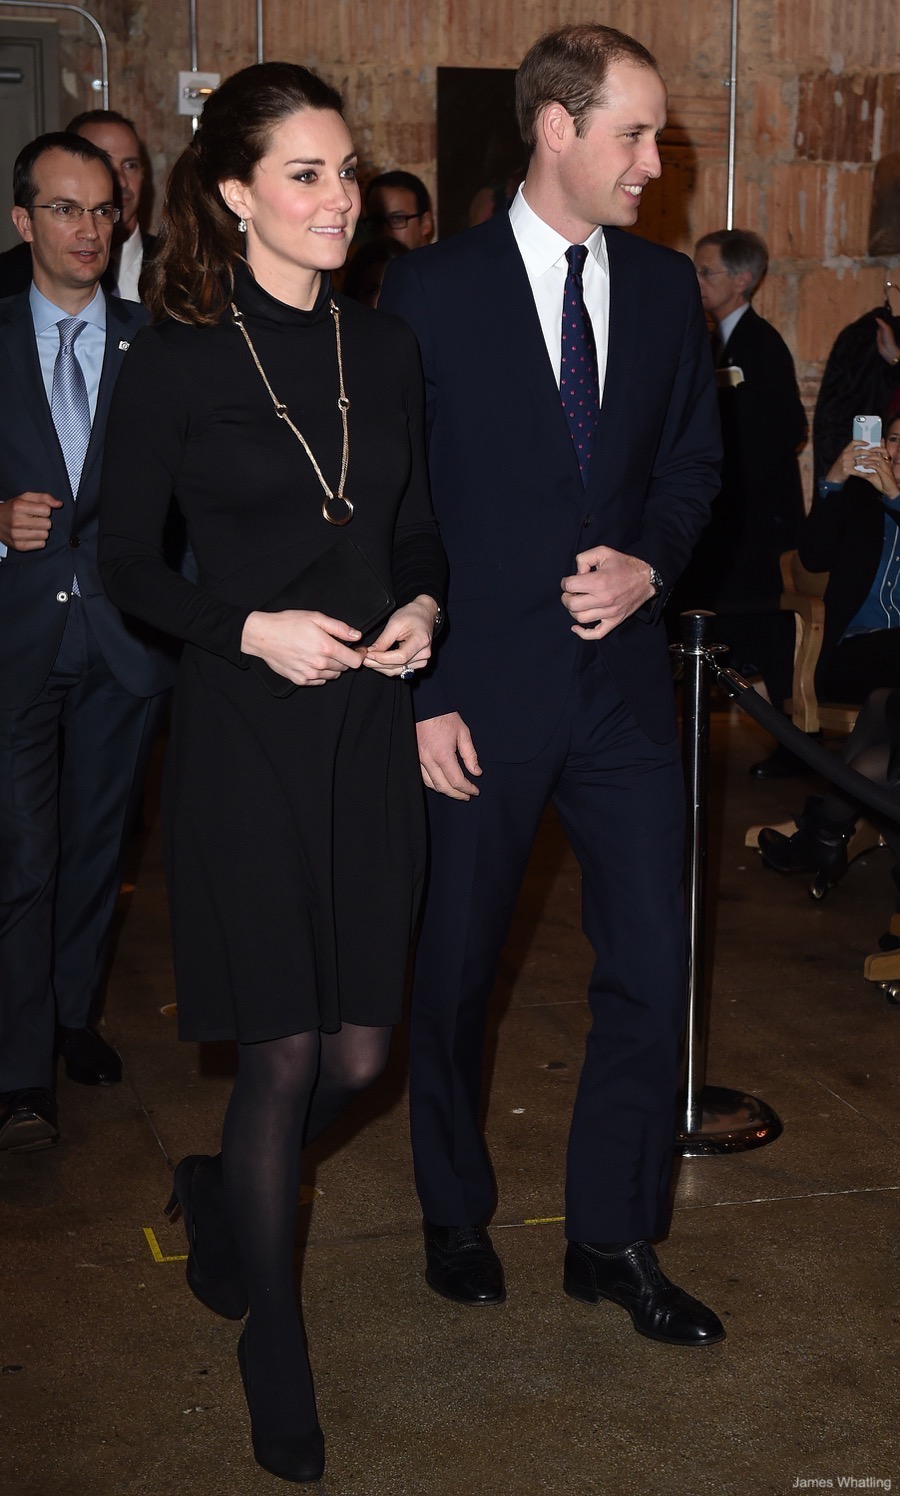 Kate Middleton wearing her black maternity dress from Seraphine